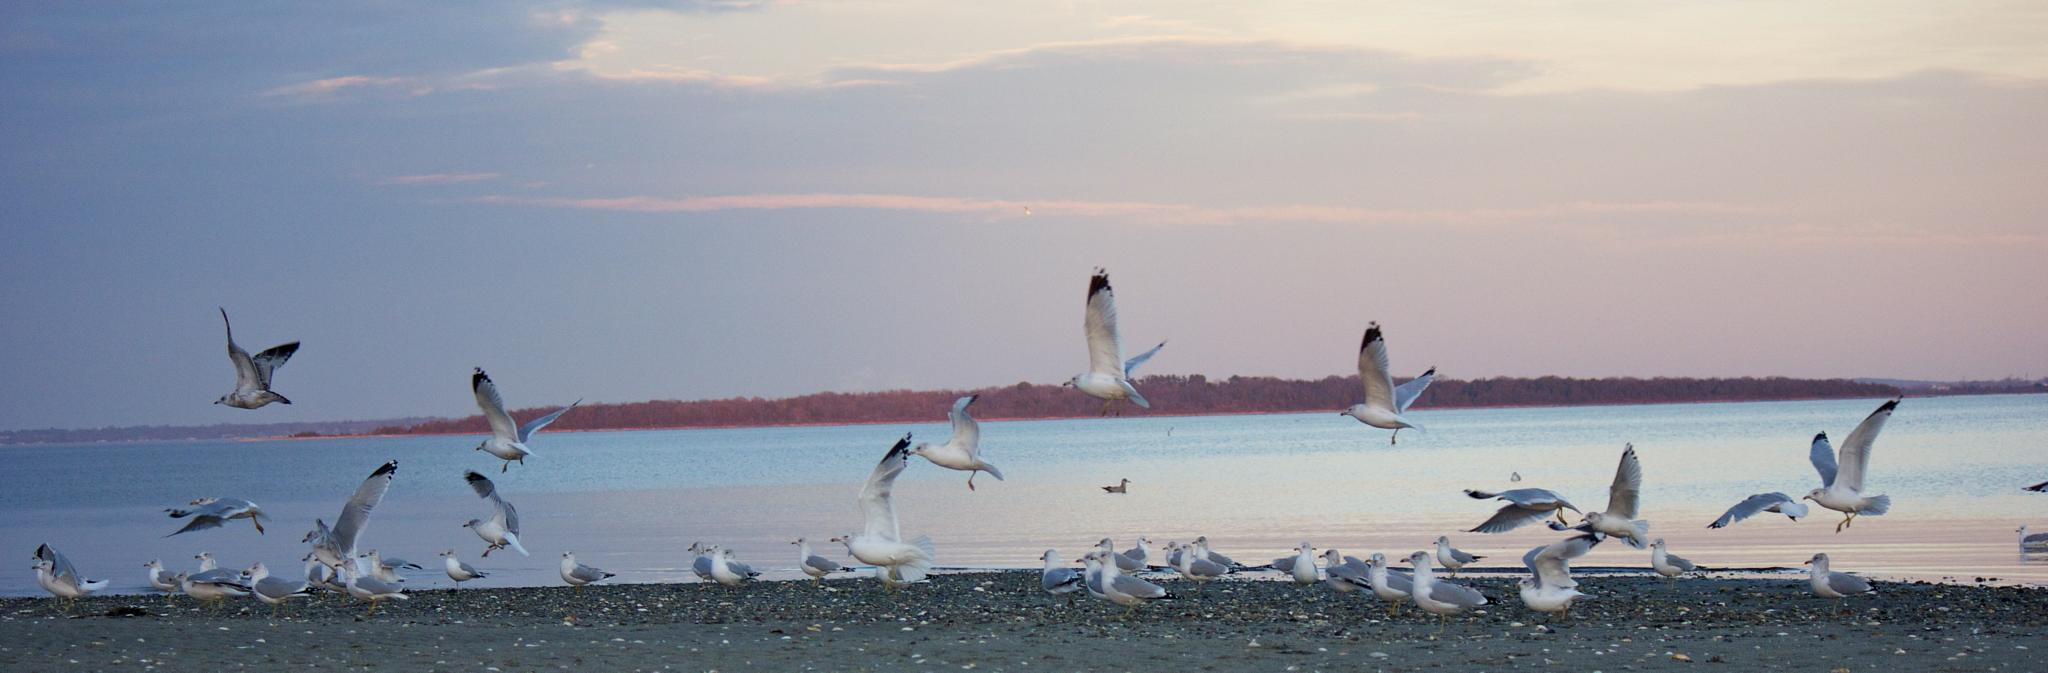 Seagulls at Sunset by kcimini